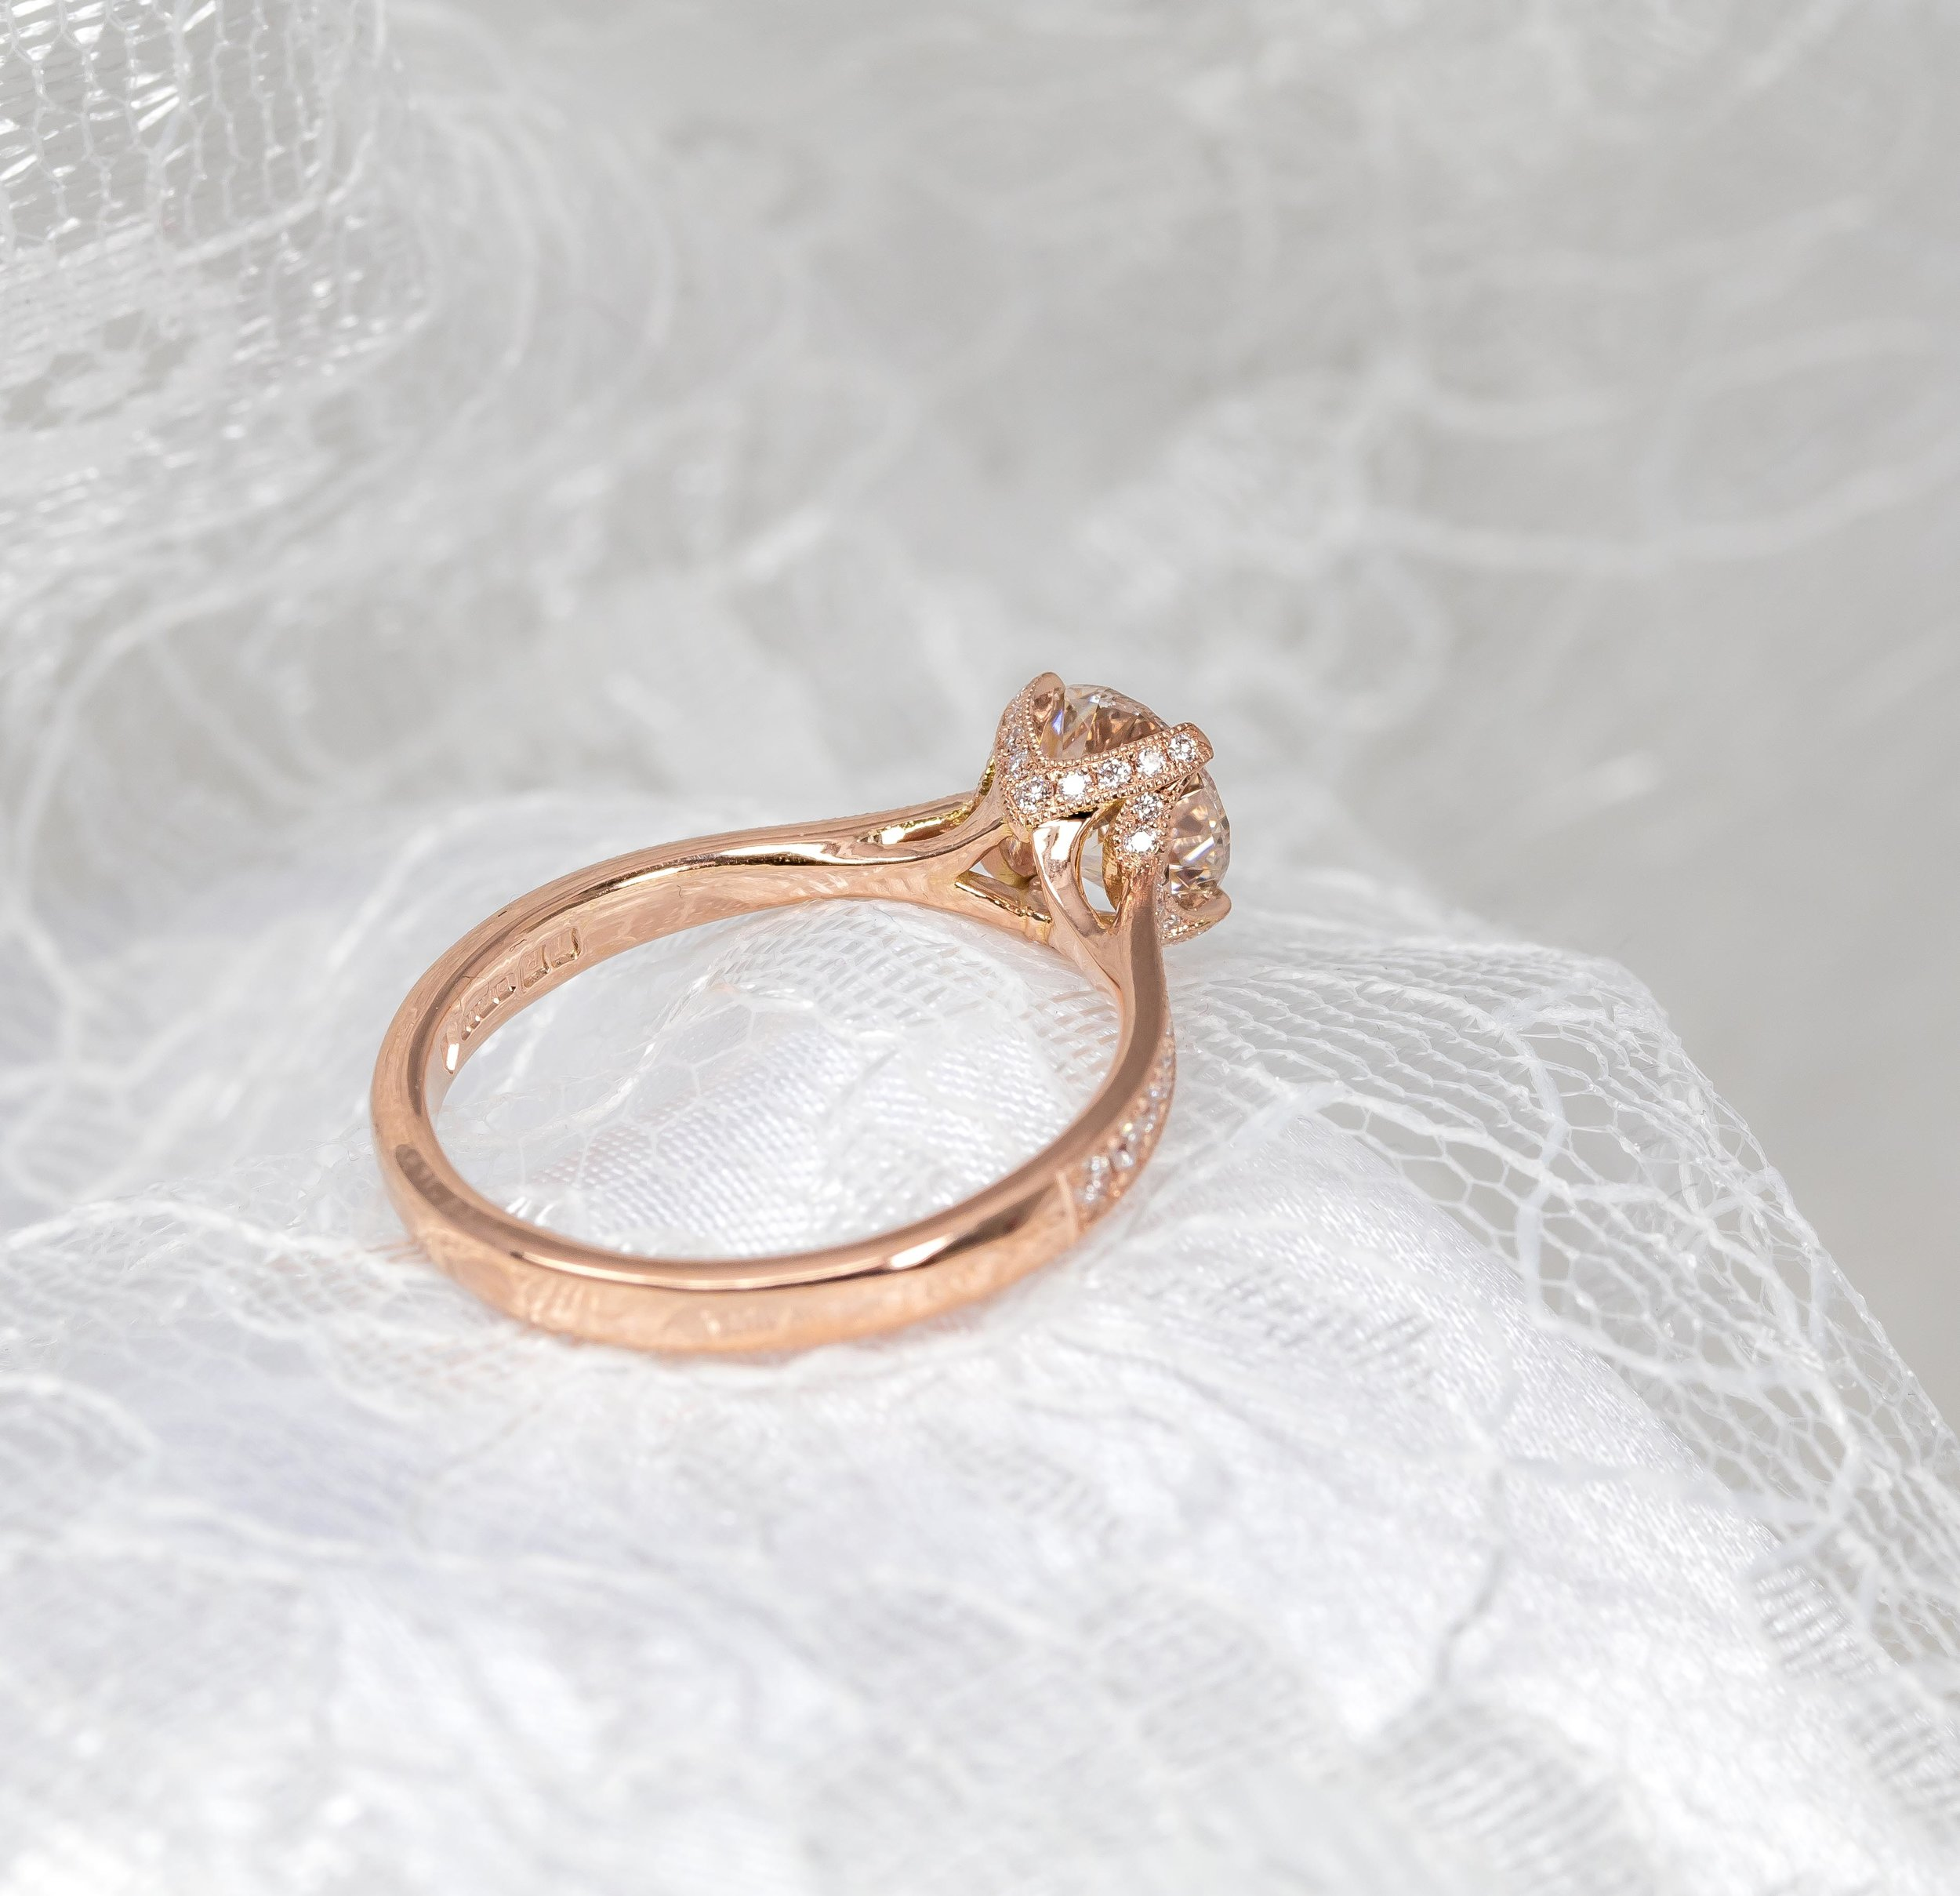 18ct rose gold mounted diamond solitaire with grain set diamond claws and shoulders. Made in Chichester, England.